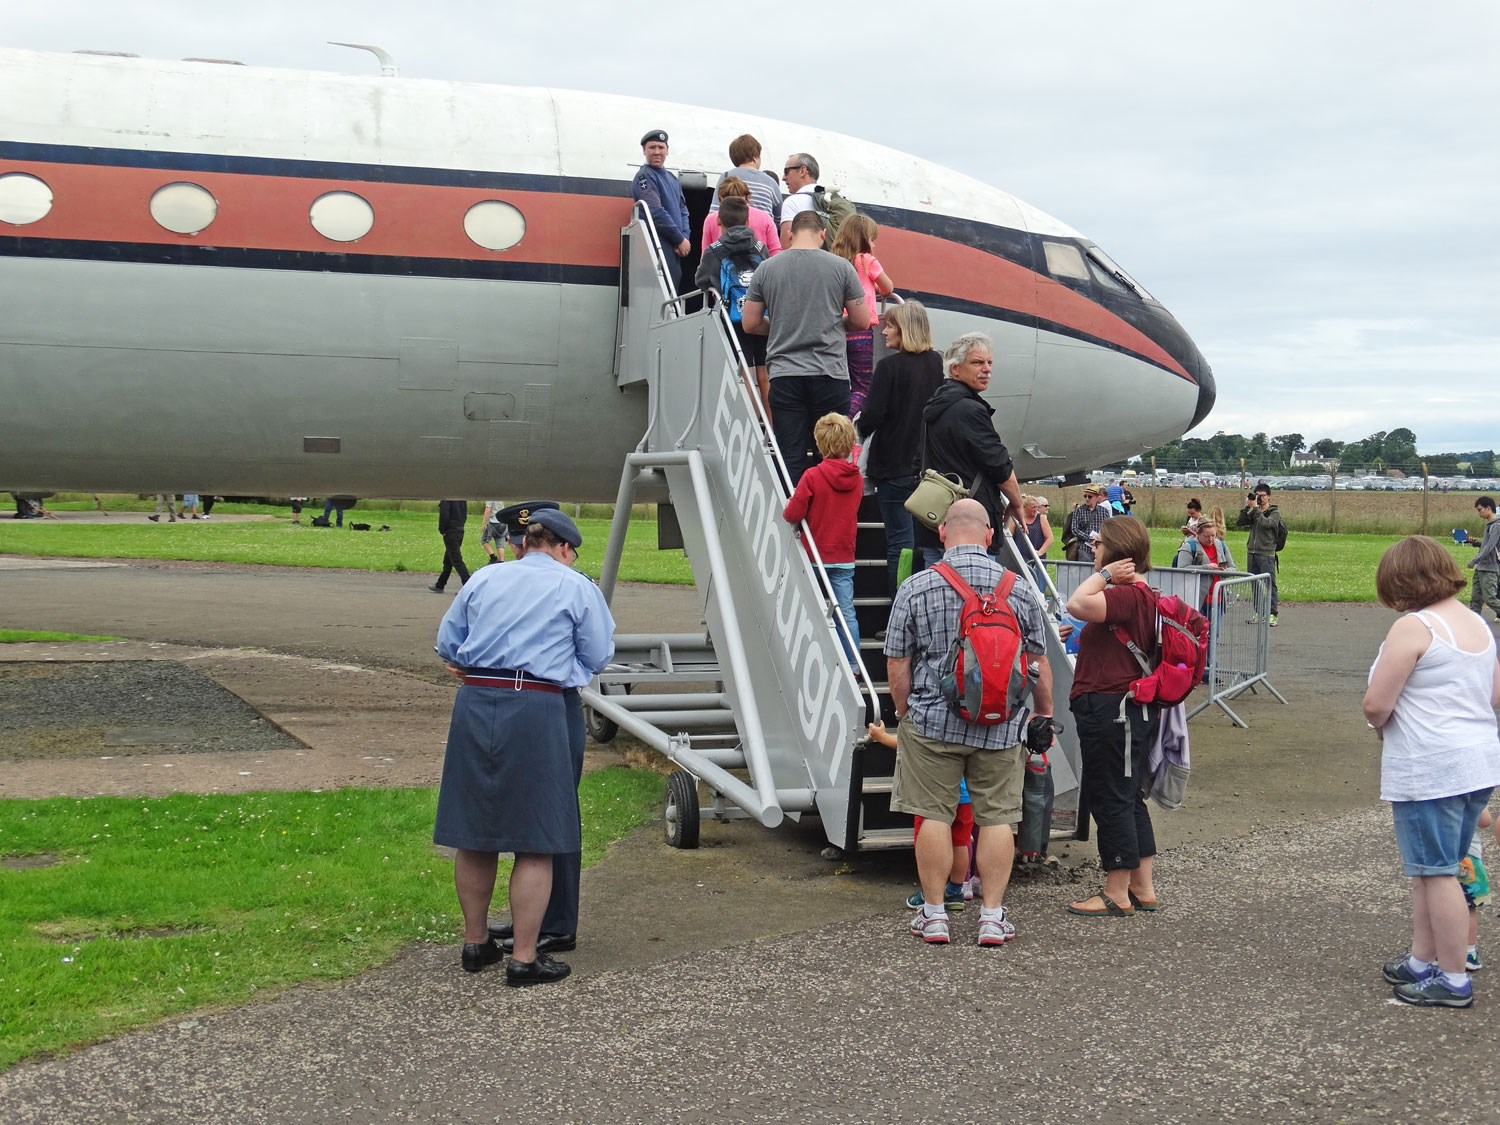 Boarding the East Fortune Airway's Comet 4c at Scotland's National Airshow 2016.